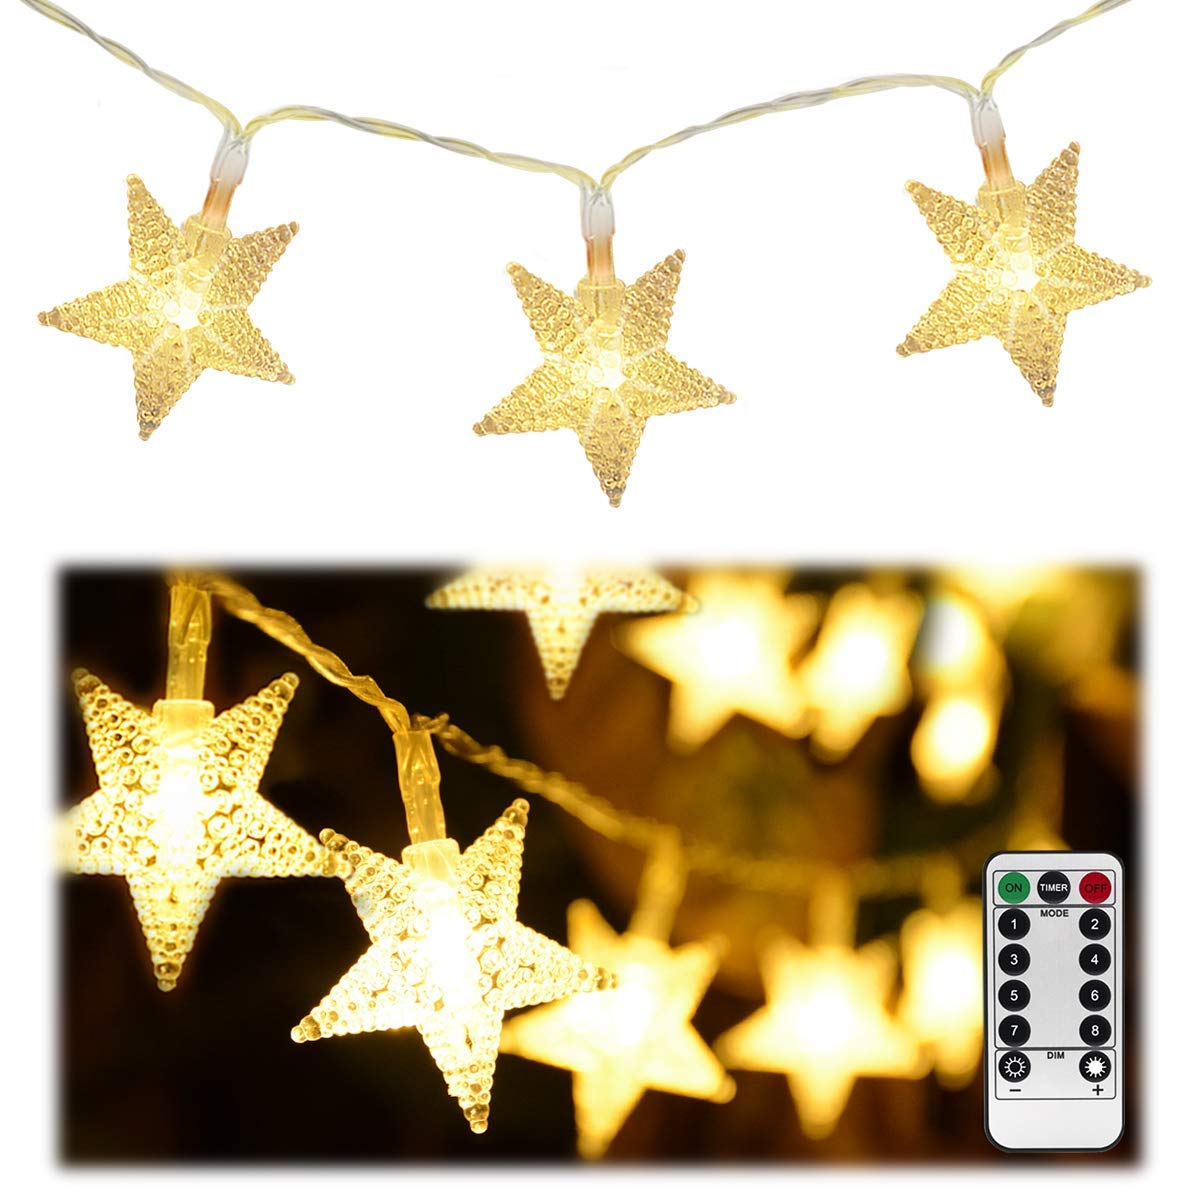 Homeleo 50ft 100 LED Star String Lights,Battery Operated LED Star Lights, Remote Warm White LED Twinkle Fairy Lights for Christmas Tree Decor Wedding Party Bedroom Decoration Princess Castle Play Tent